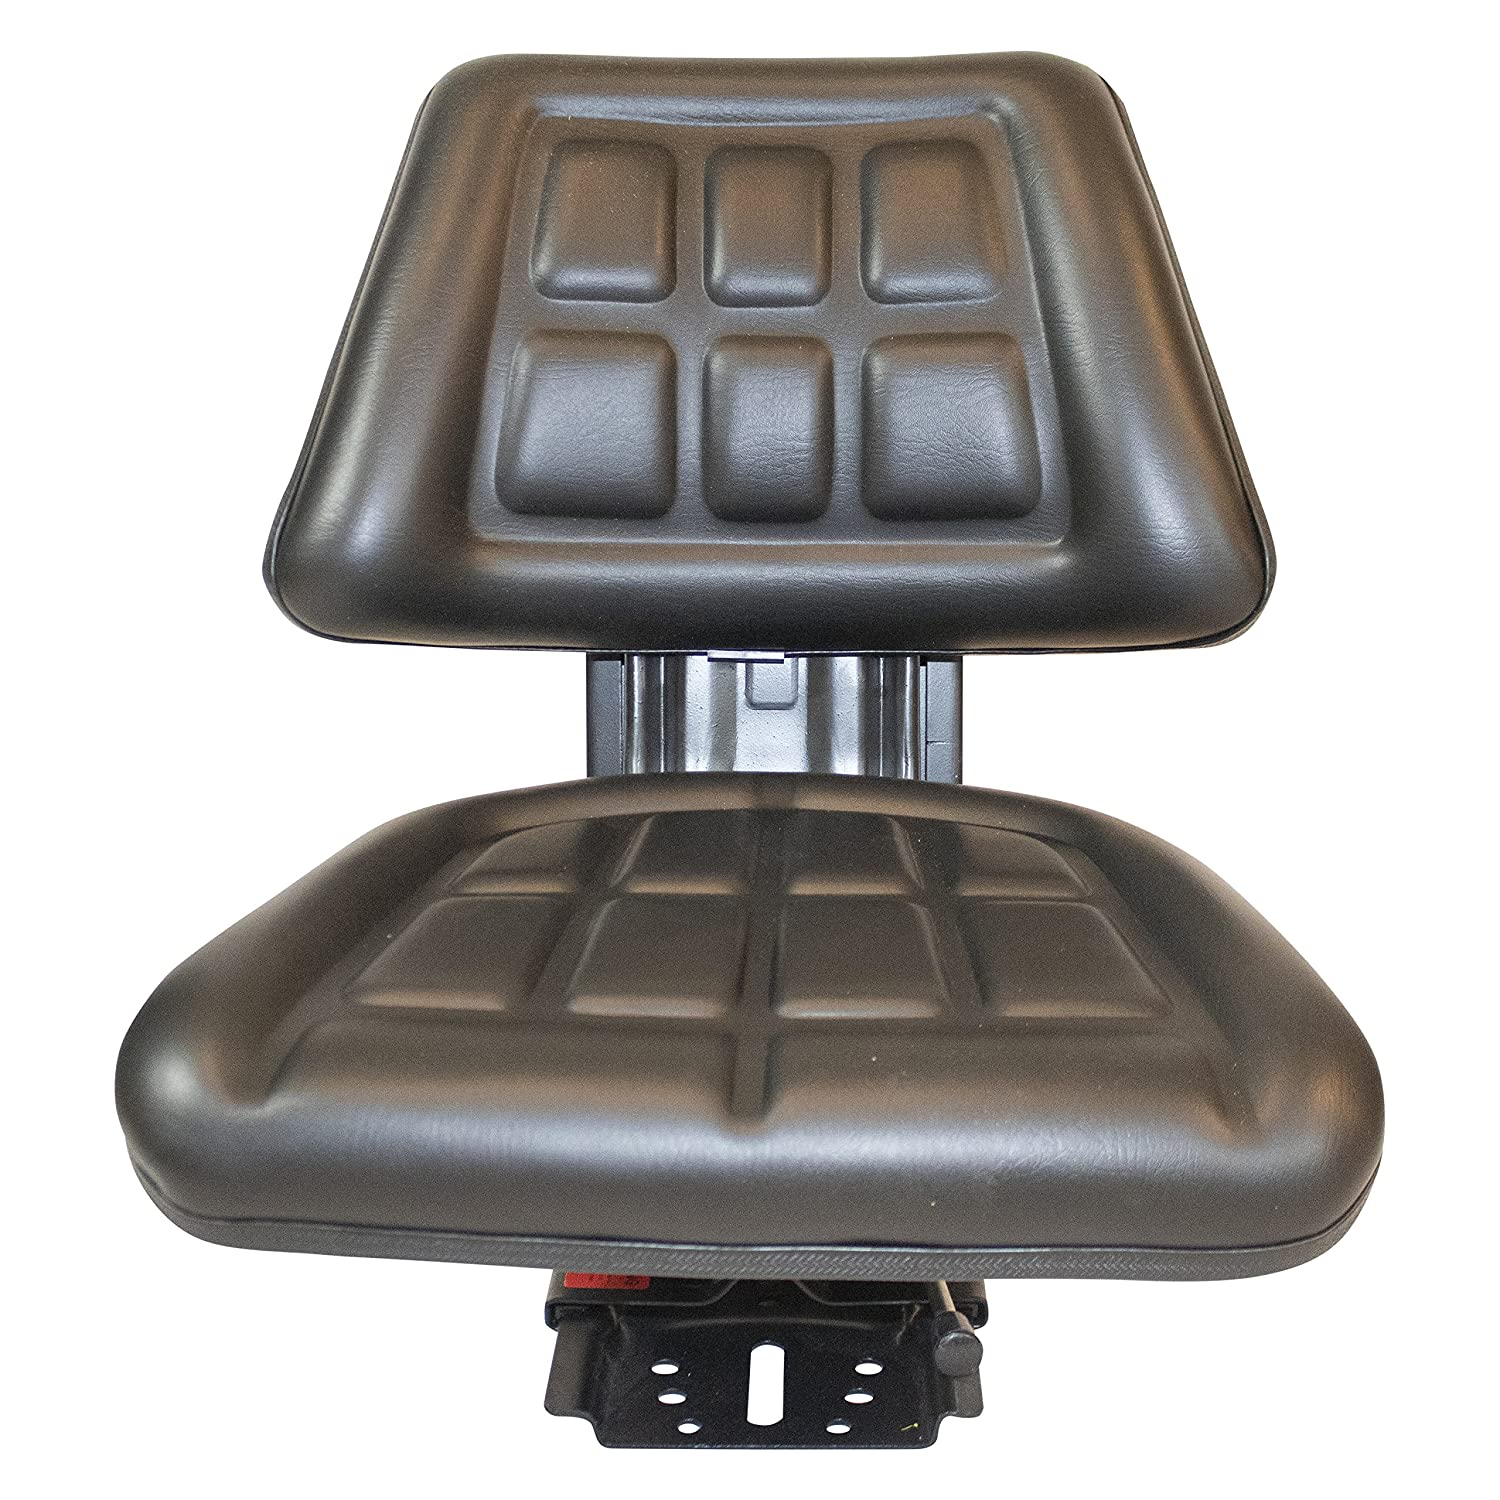 BLACK TRIBACK MASSEY FERGUSON 230 231 234 234H 234S 235 240 245 250 254 255 TRAC SEATS UNIVERSAL TRACTOR SUSPENSION SEAT Stateline Distribution Inc. MASS230-TRI